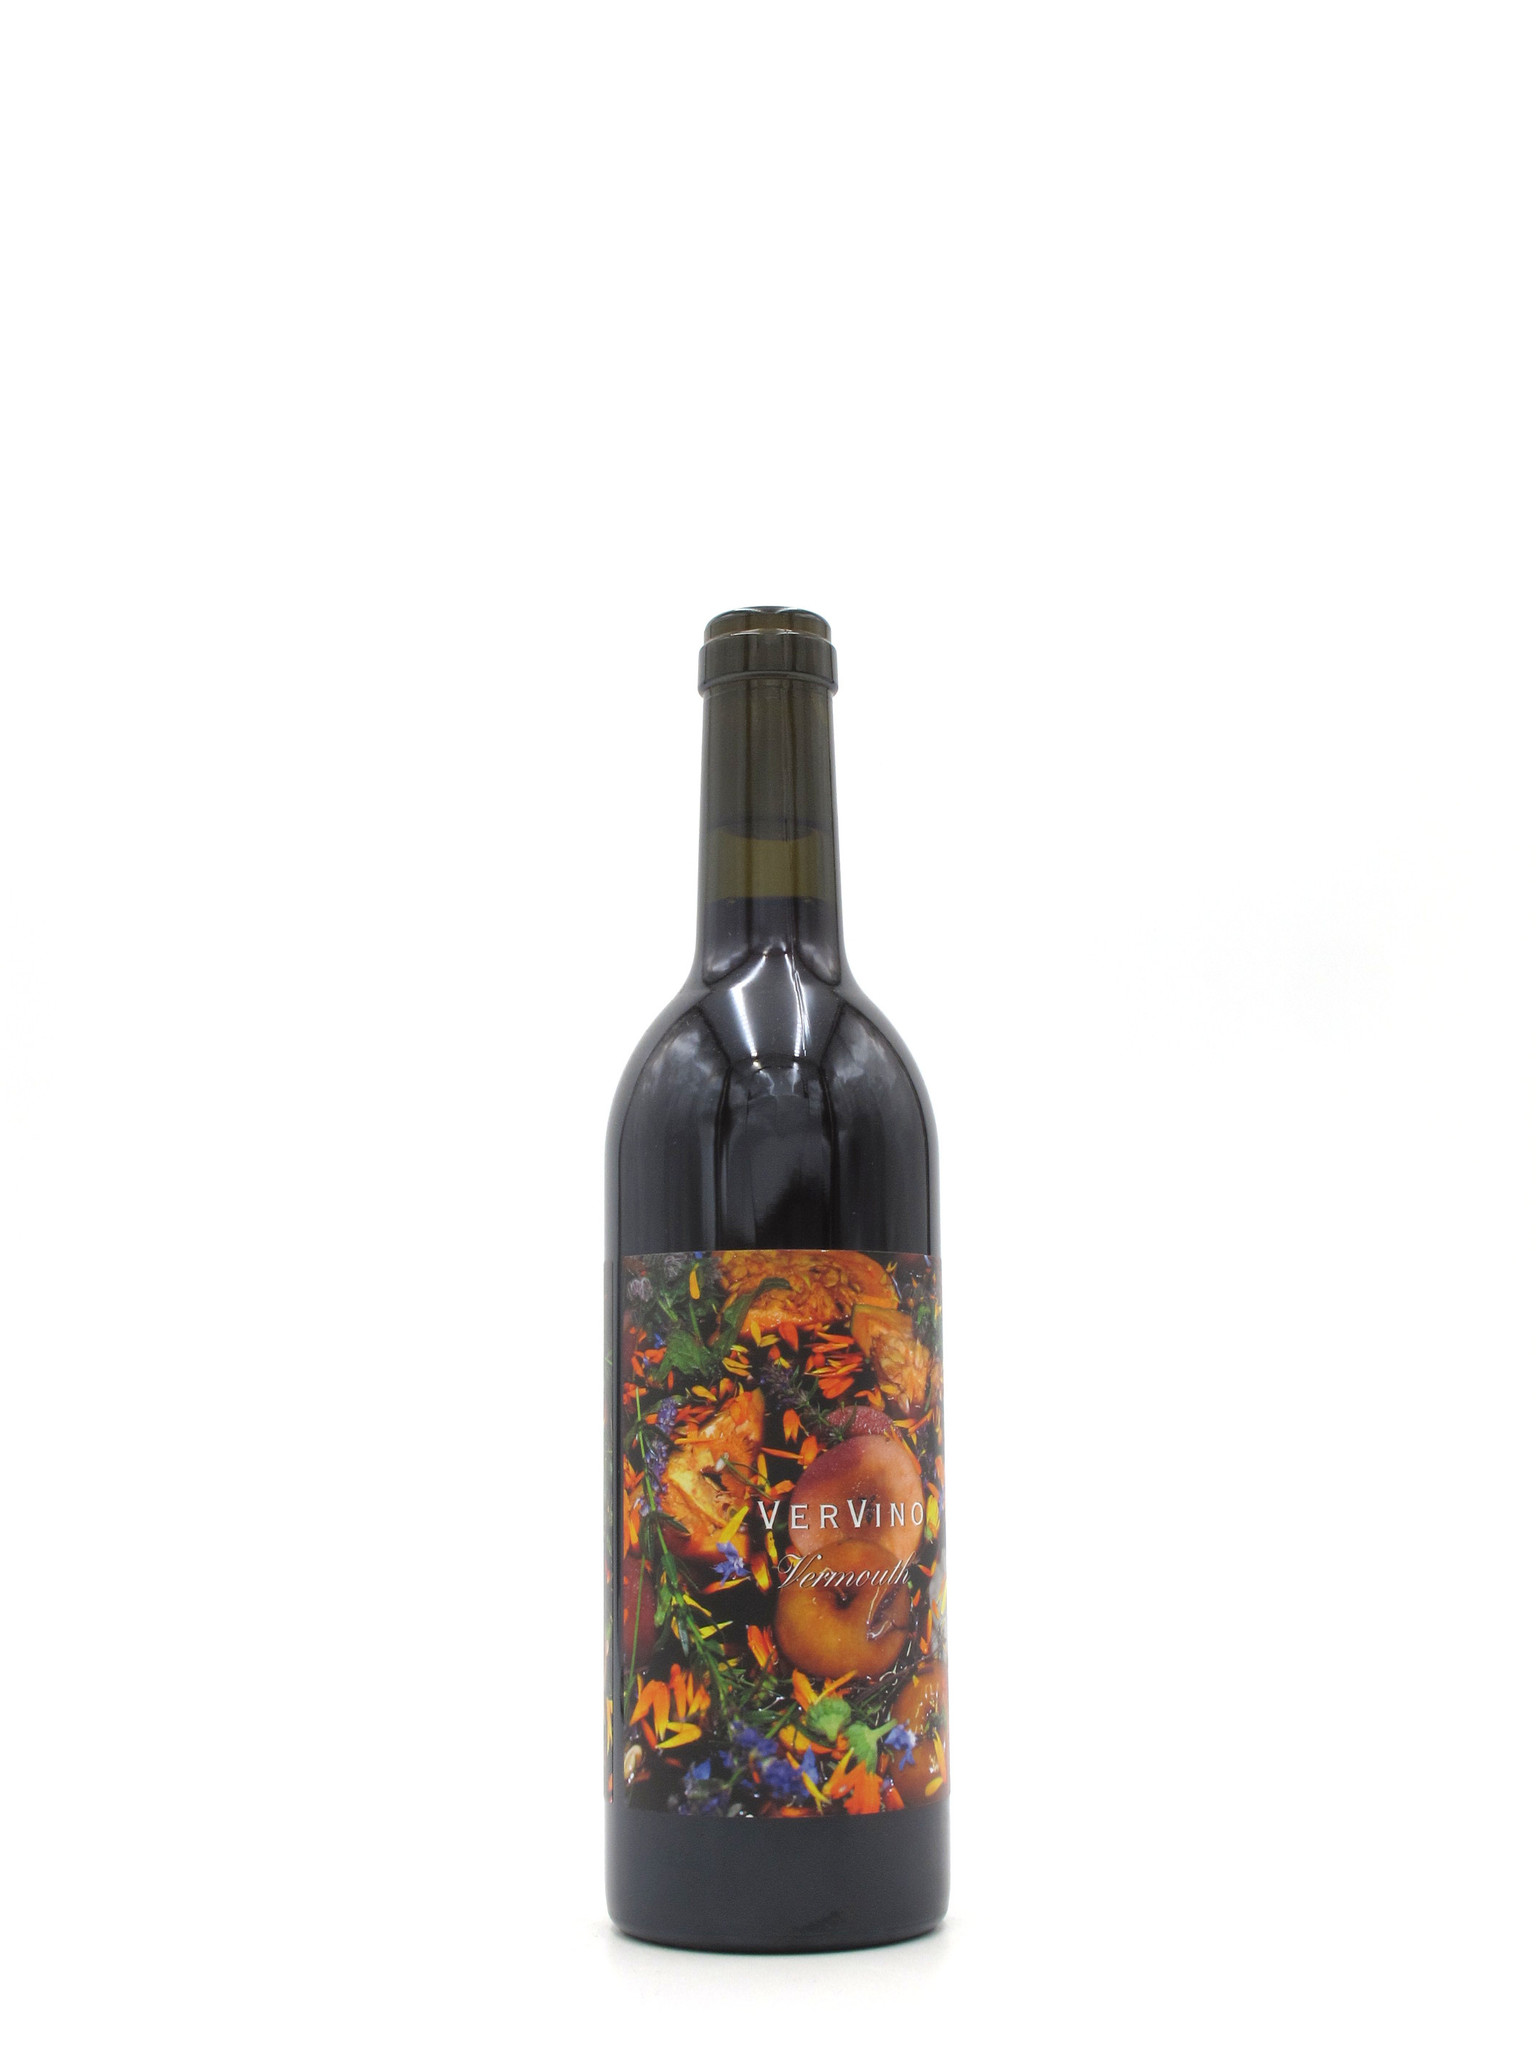 Channing Daughters Channing Daughters Vervino Vermouth Variation #6 500mL